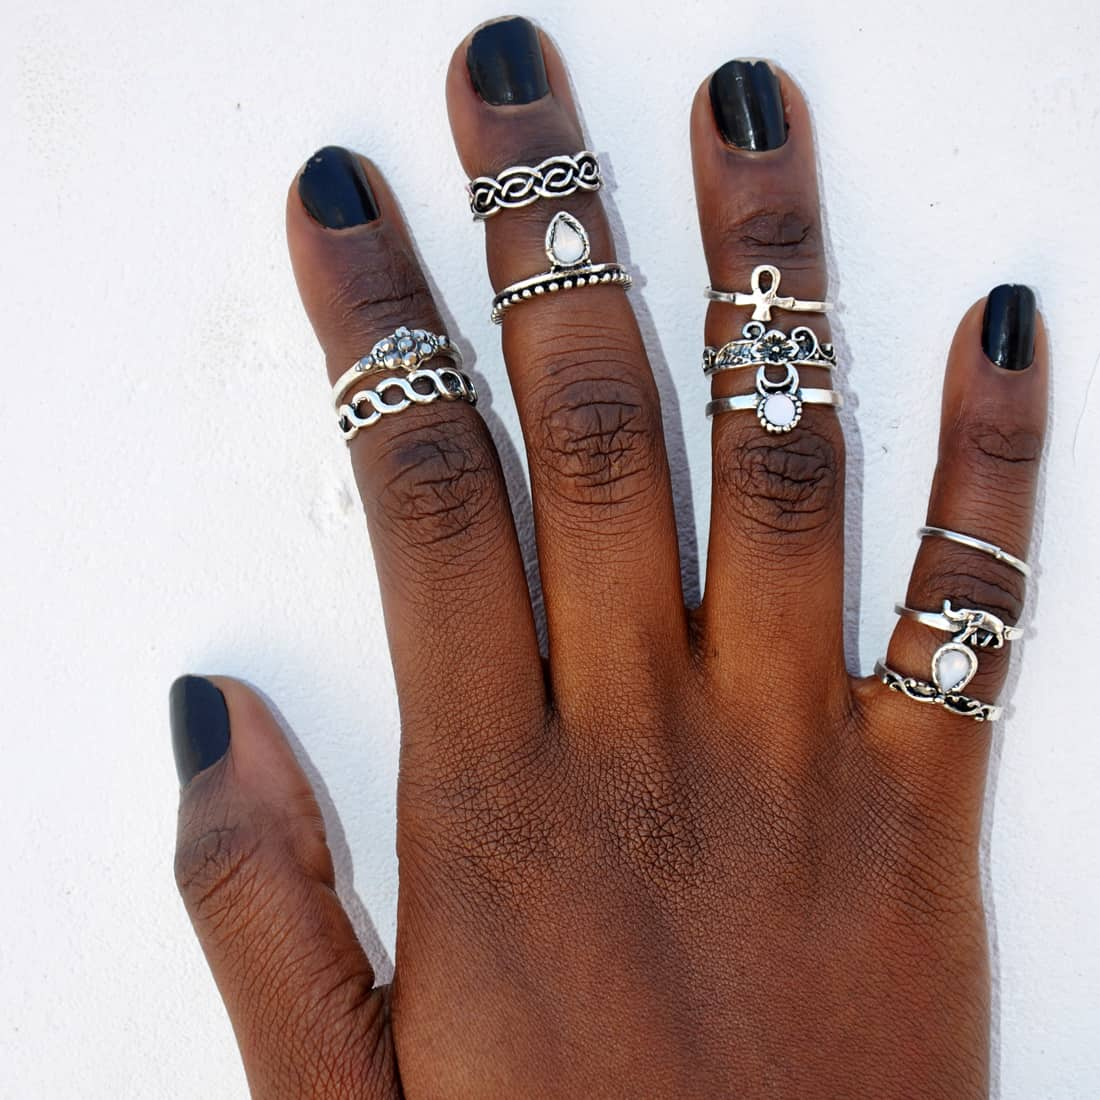 M0317 silver9 Jewelry Sets Rings maureens.com boutique